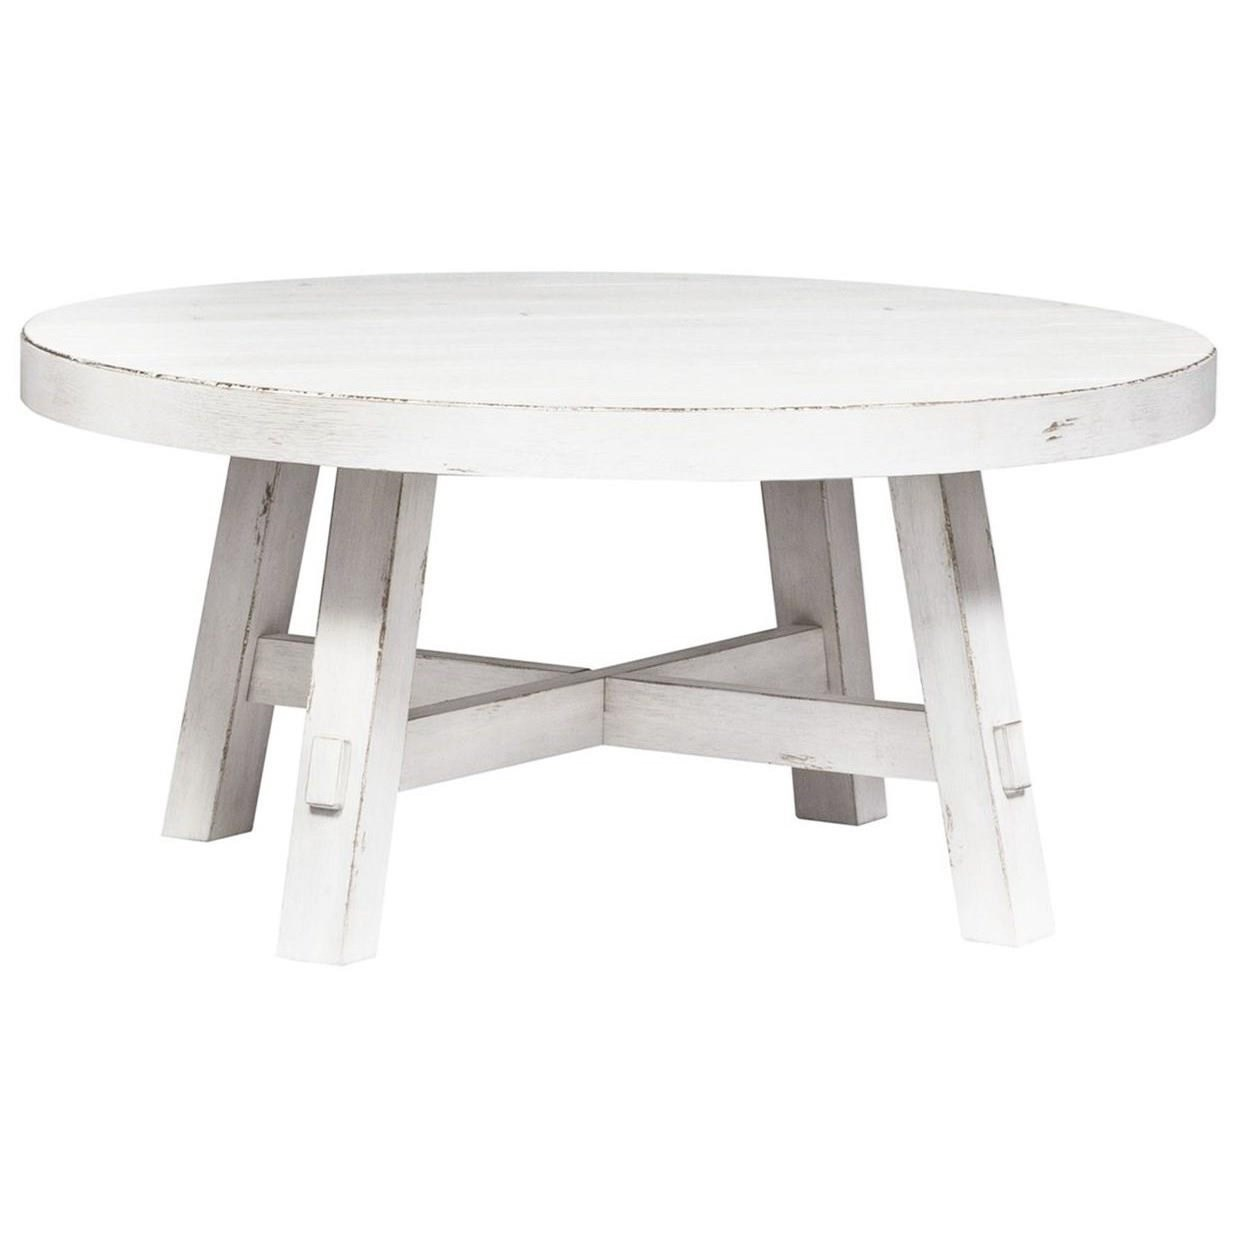 Modern Farmhouse Splay Leg Round Cocktail Table by Liberty Furniture at Standard Furniture